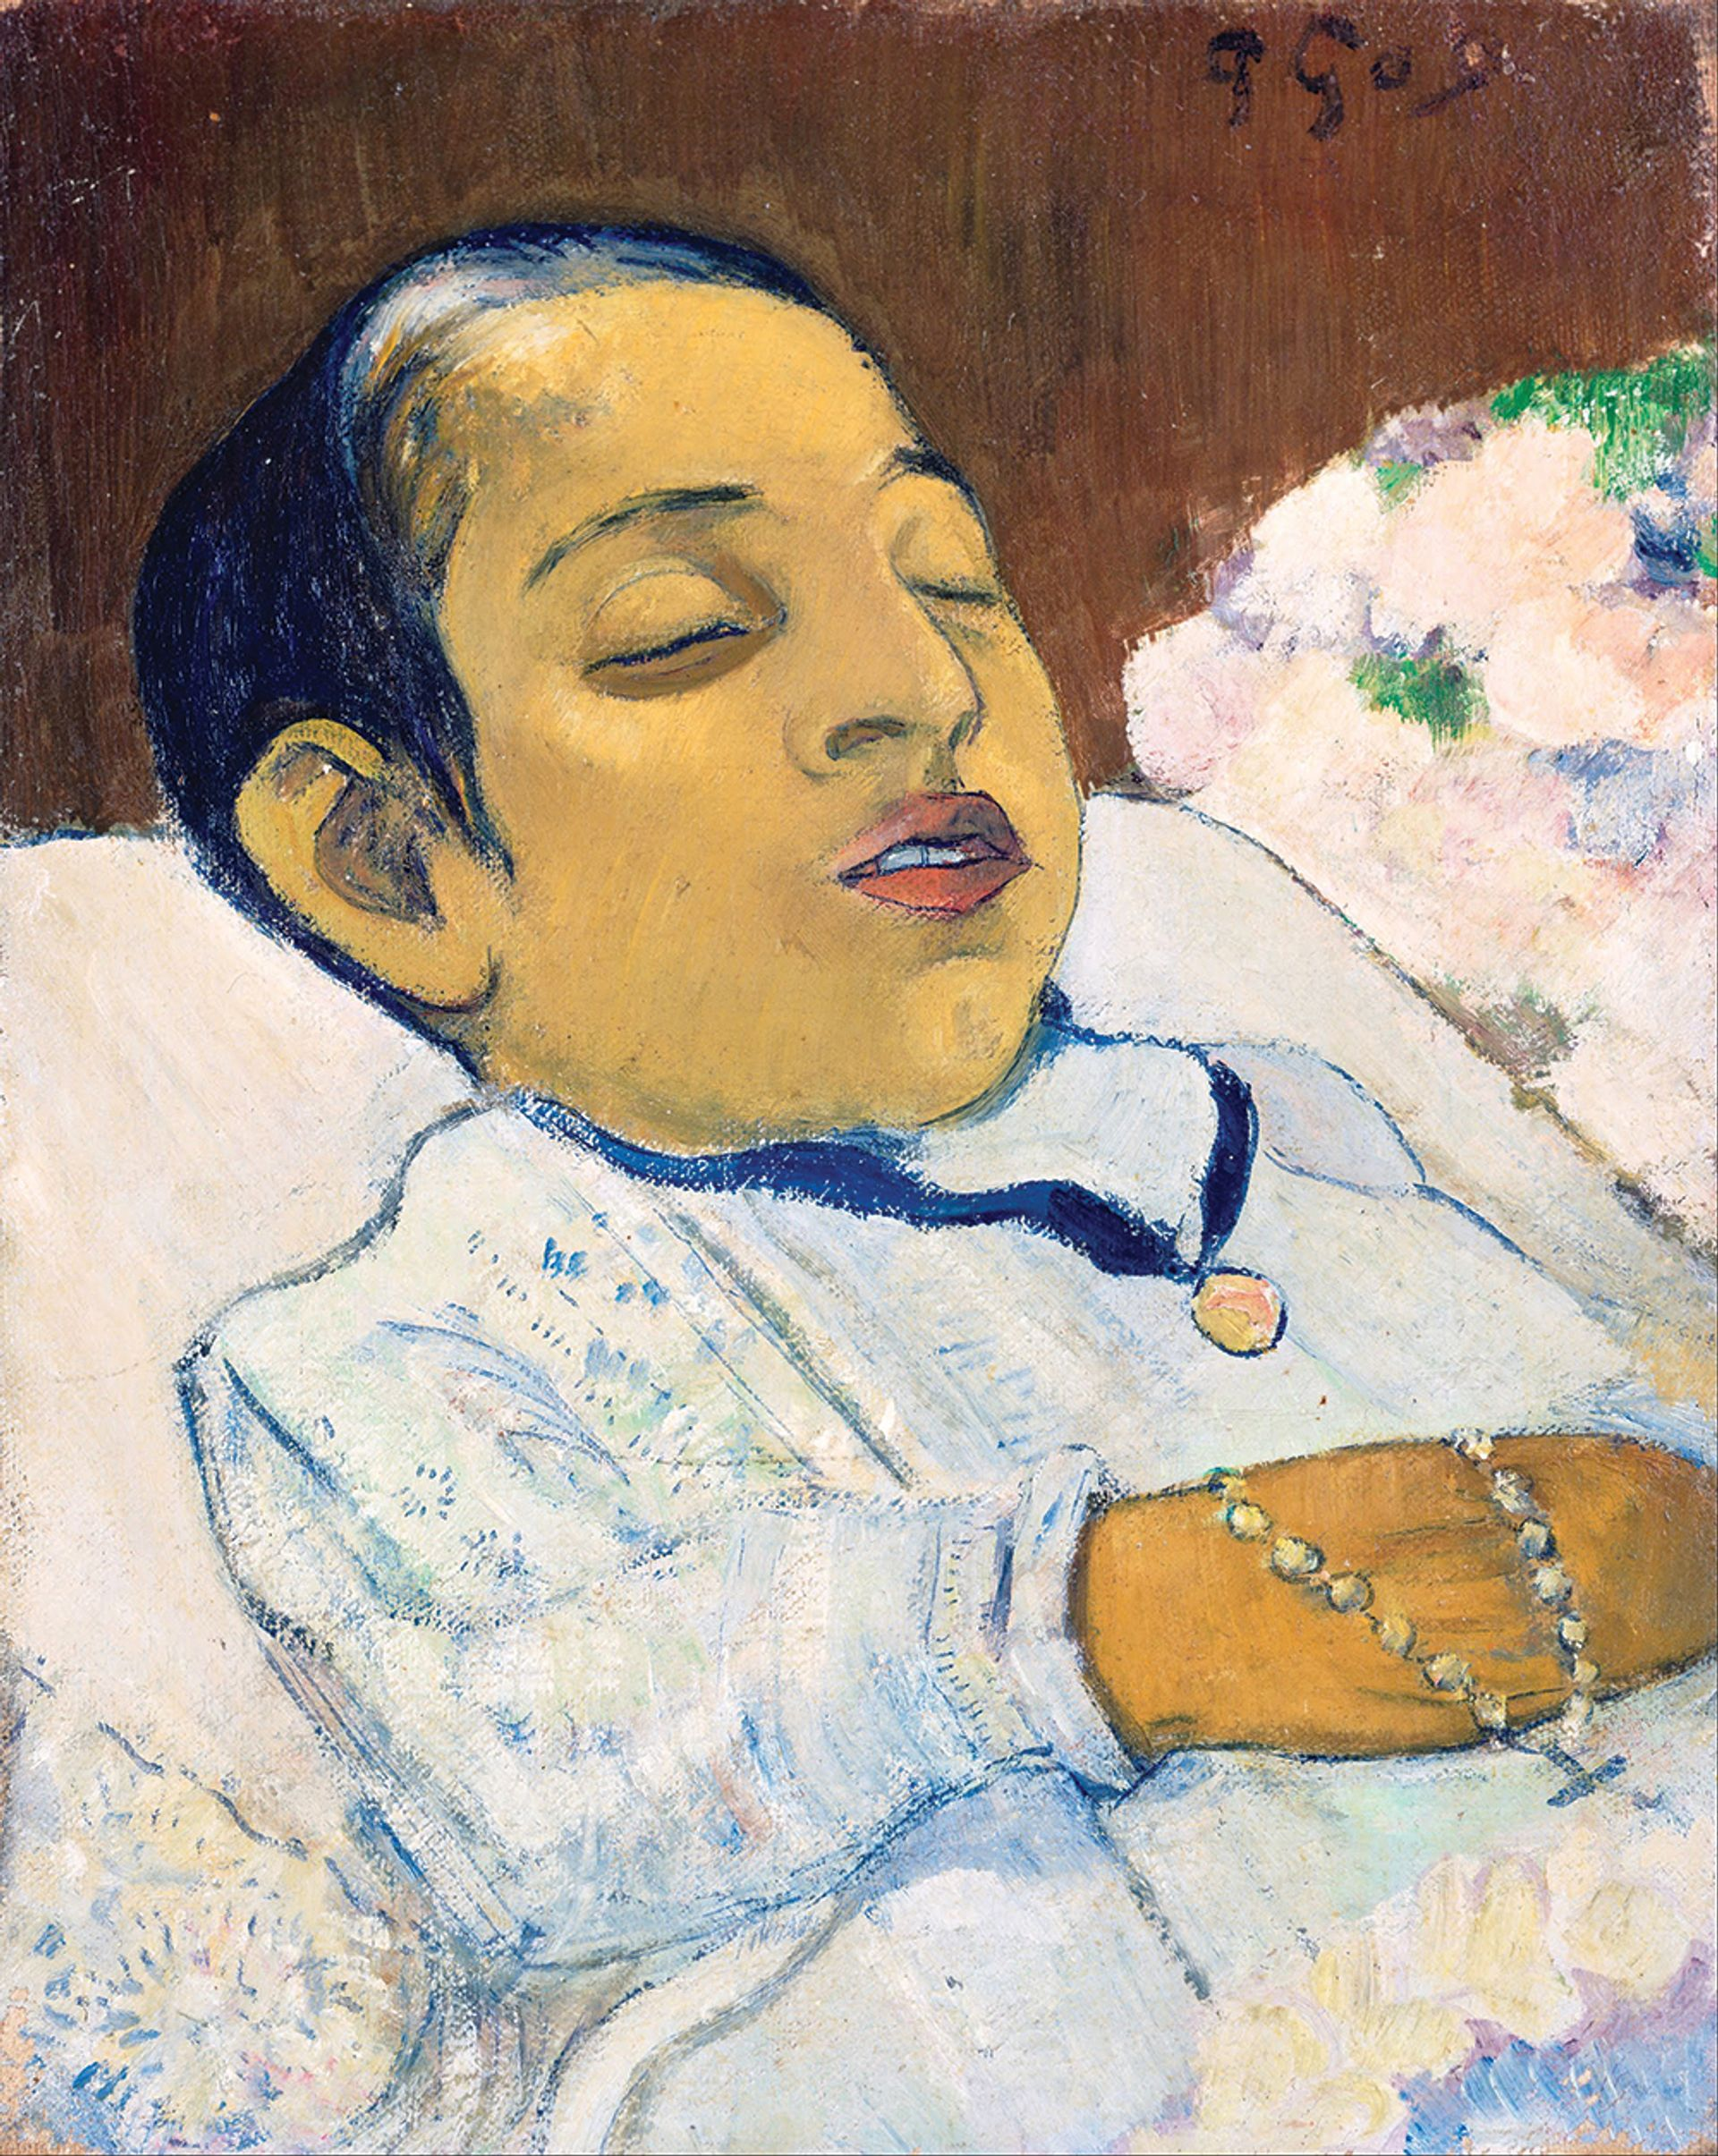 Paul Gauguin's 1892 deathbed portrait of Atiti currently on loan at the National Gallery, London Kröller-Müller Museum.